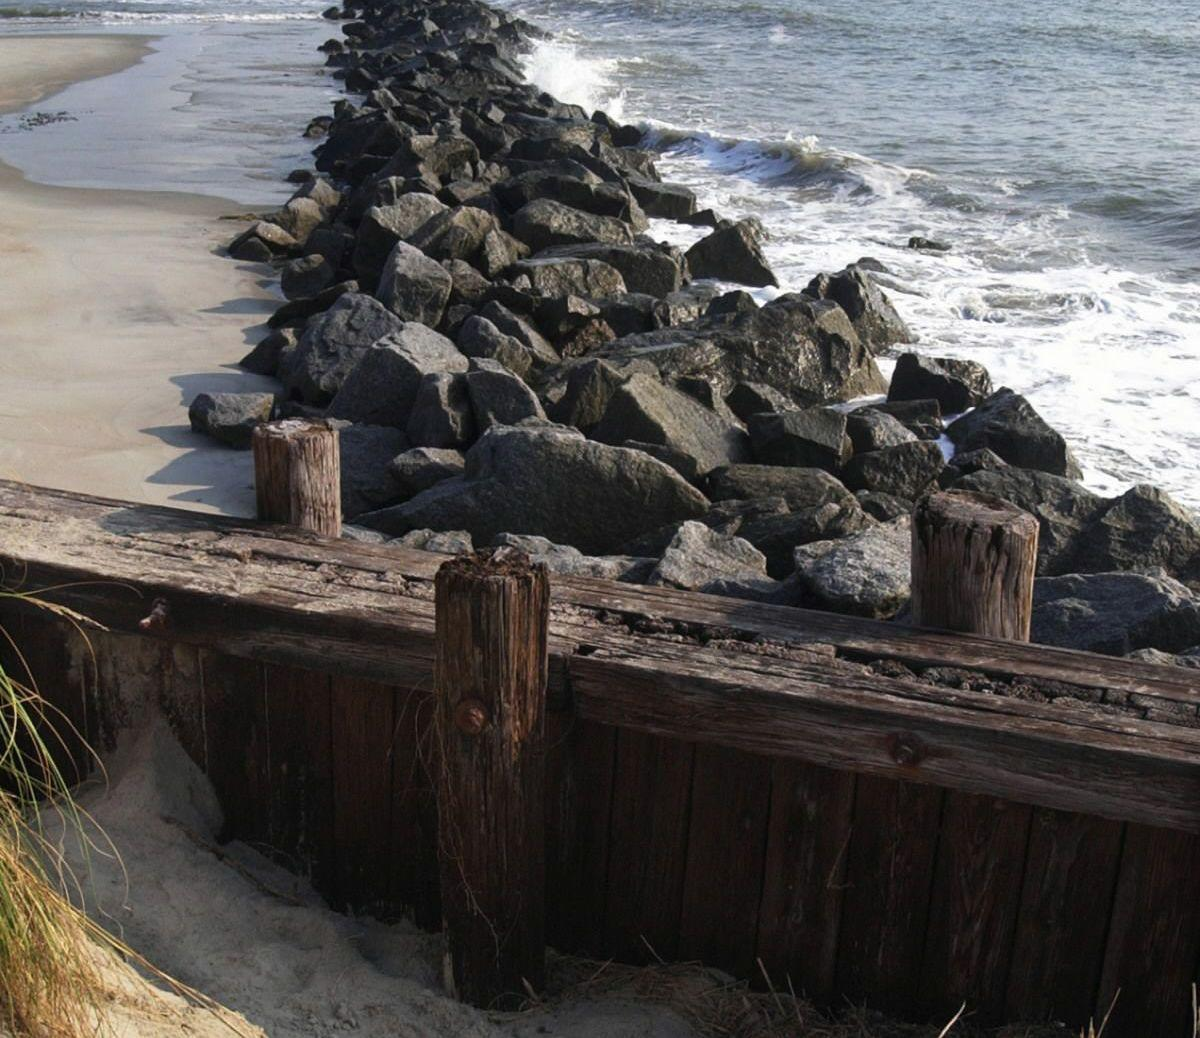 Limiting the use of groins and other erosion control devices is good for the coast